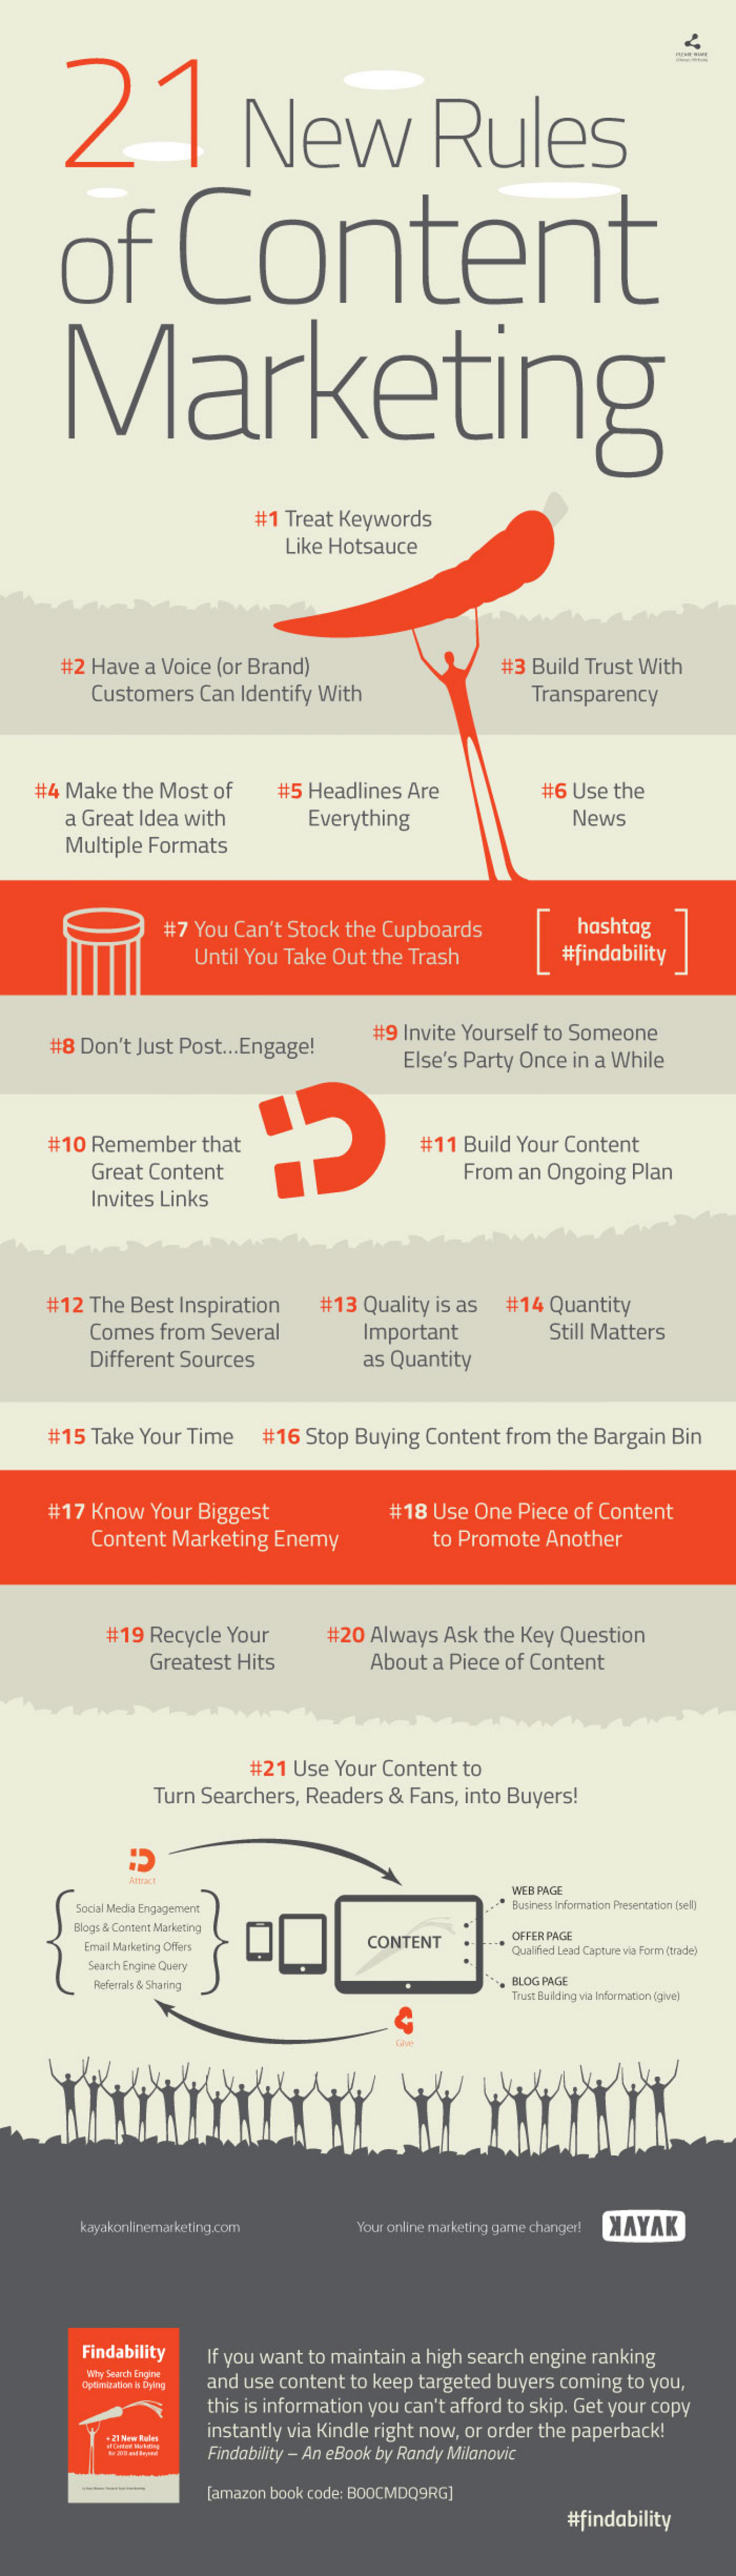 The 21 New Rules of Content Marketing Infographic